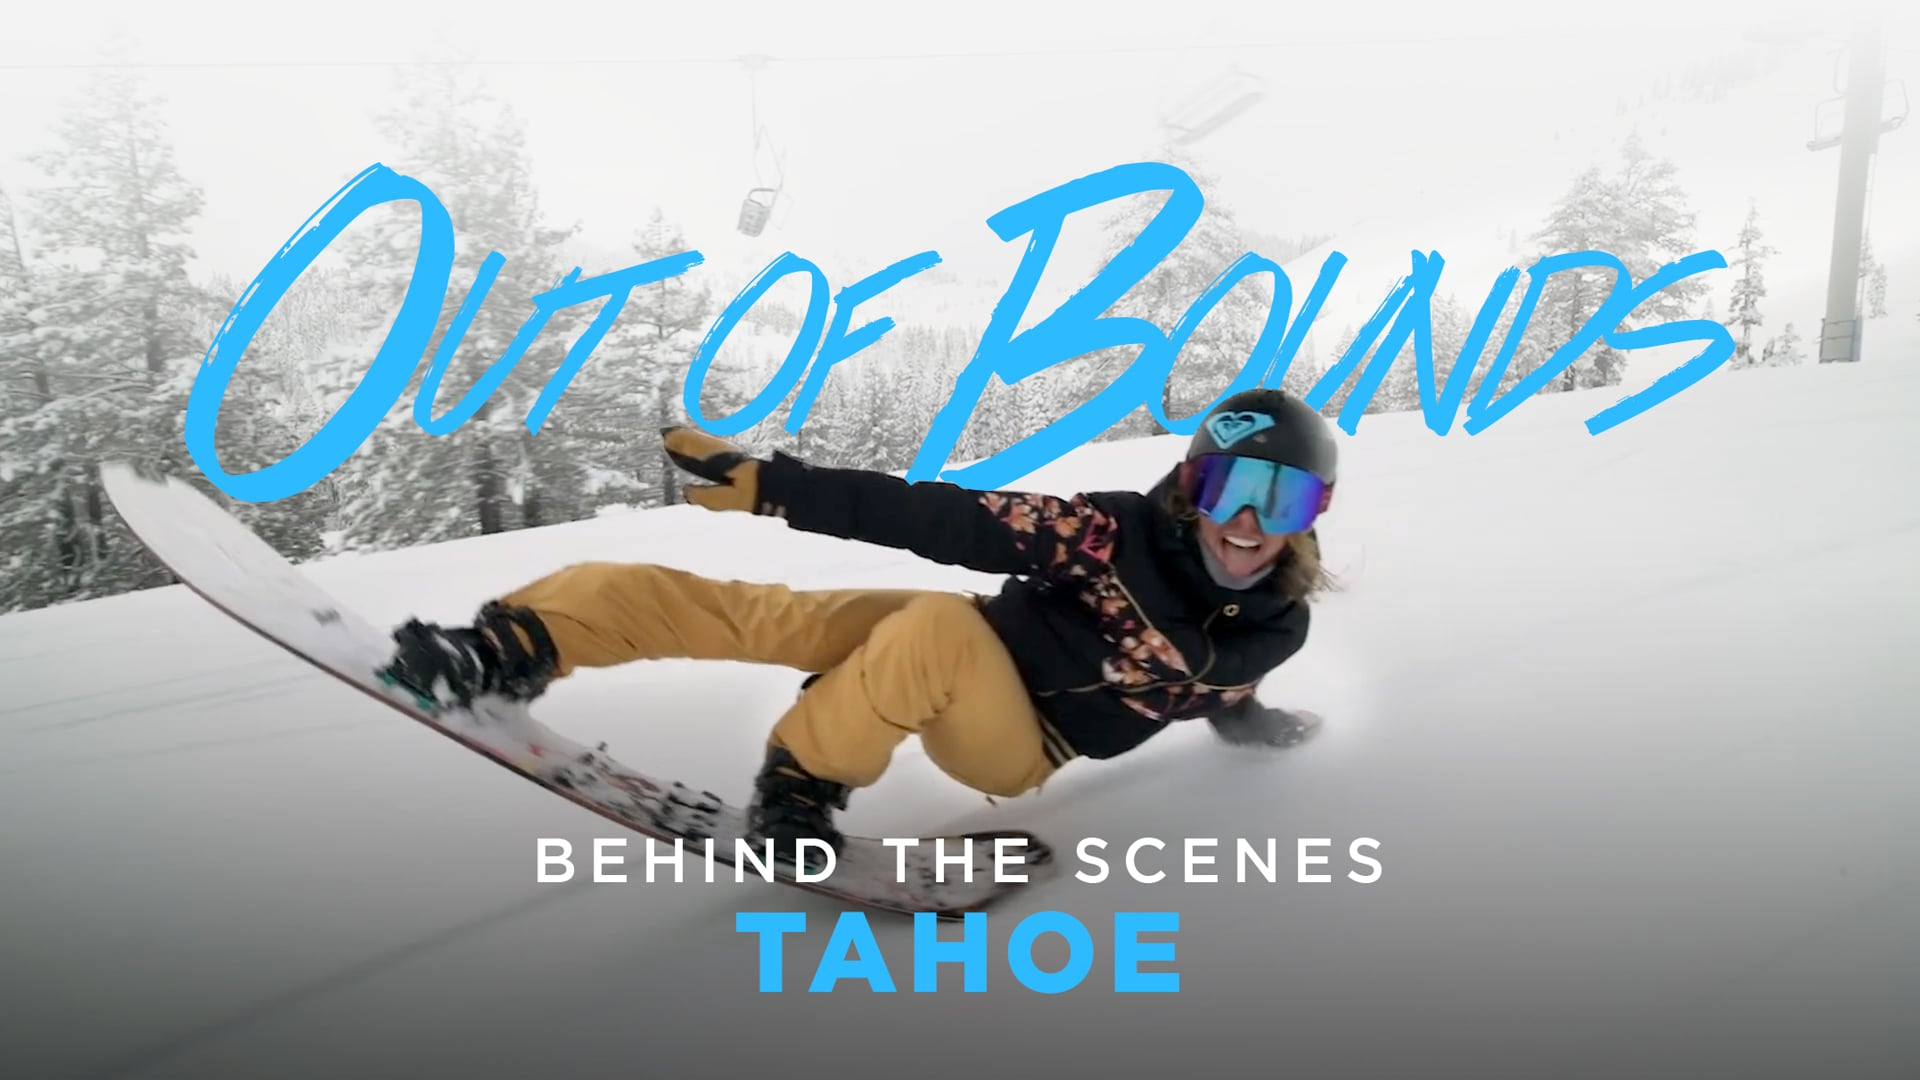 Out of Bounds - Behind the Scenes 2 - Tahoe